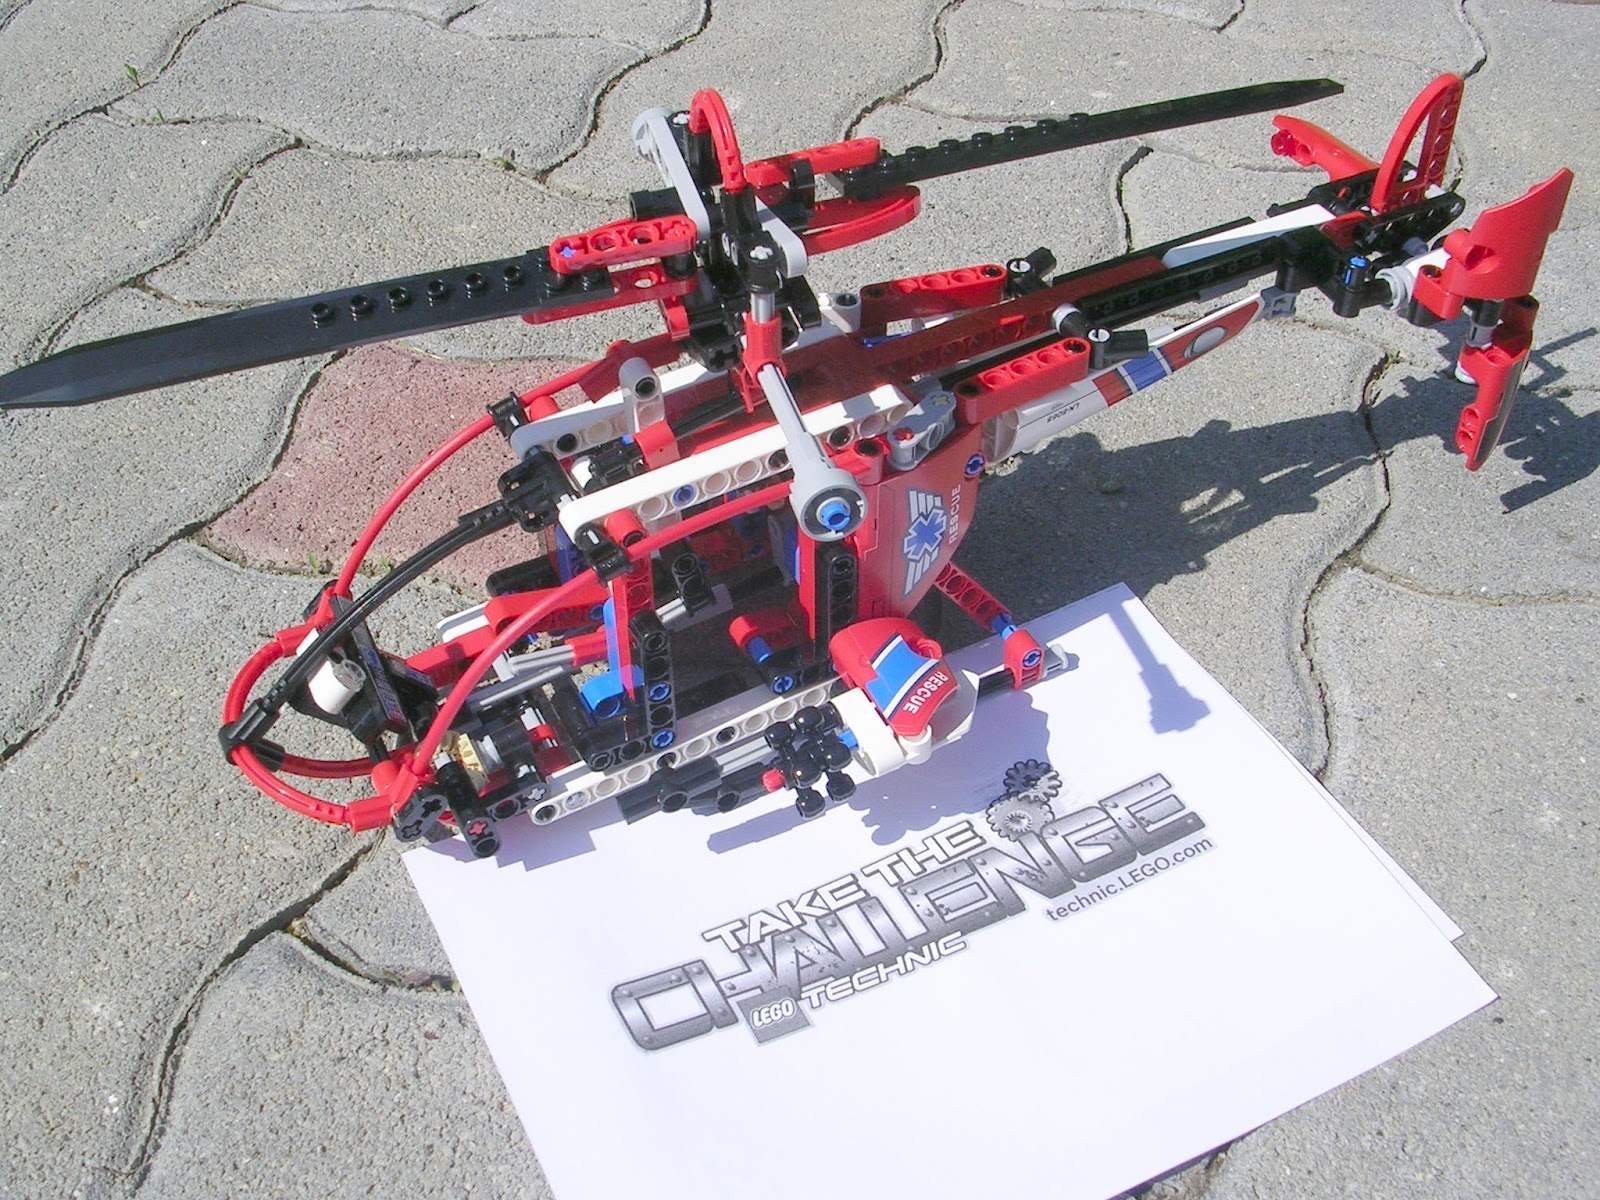 hughes rc helicopter with Rebuilding 8068 Rescue Helicopter Into on Rebuilding 8068 Rescue Helicopter Into besides Watch in addition 73414 Hughes Oh 6 Cayuse also Art TechMD500Li PolyBatteryArmyHughesStyle4CHRTFElectricRCMilitaryHelicopter also Watch.